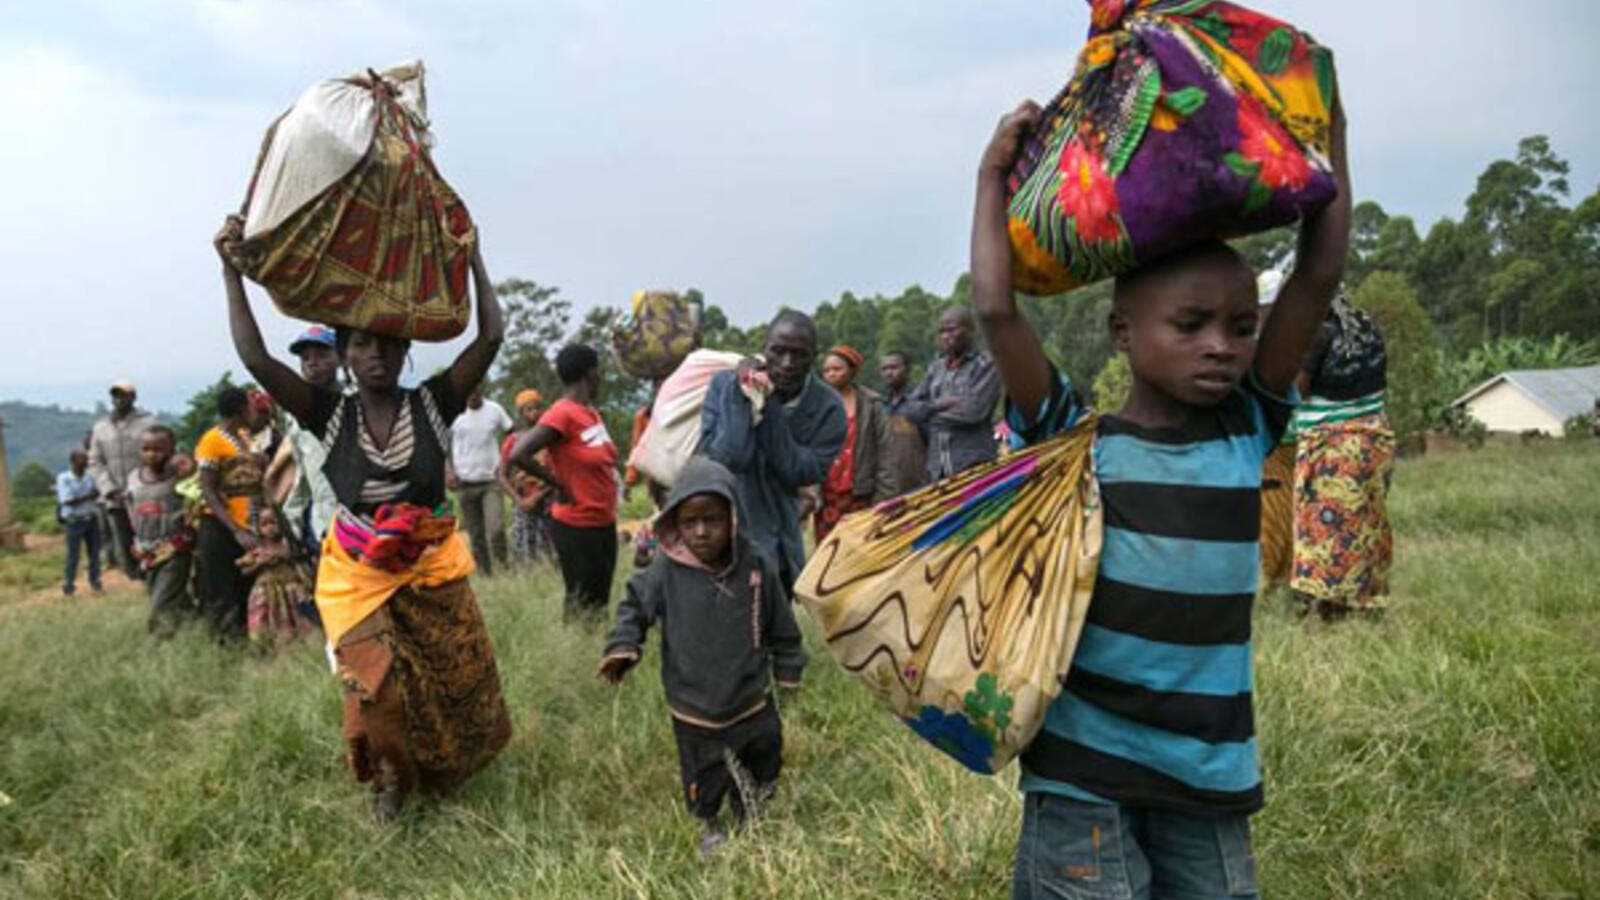 Congolese refugees, with their belongings, cross the border to Uganda in Nteko on January 24, 2018. Nearly 7,000 Congolese have also crossed Lake Tanganyika and taken refuge in Burundi since January 24. (AFP/ File Photo)